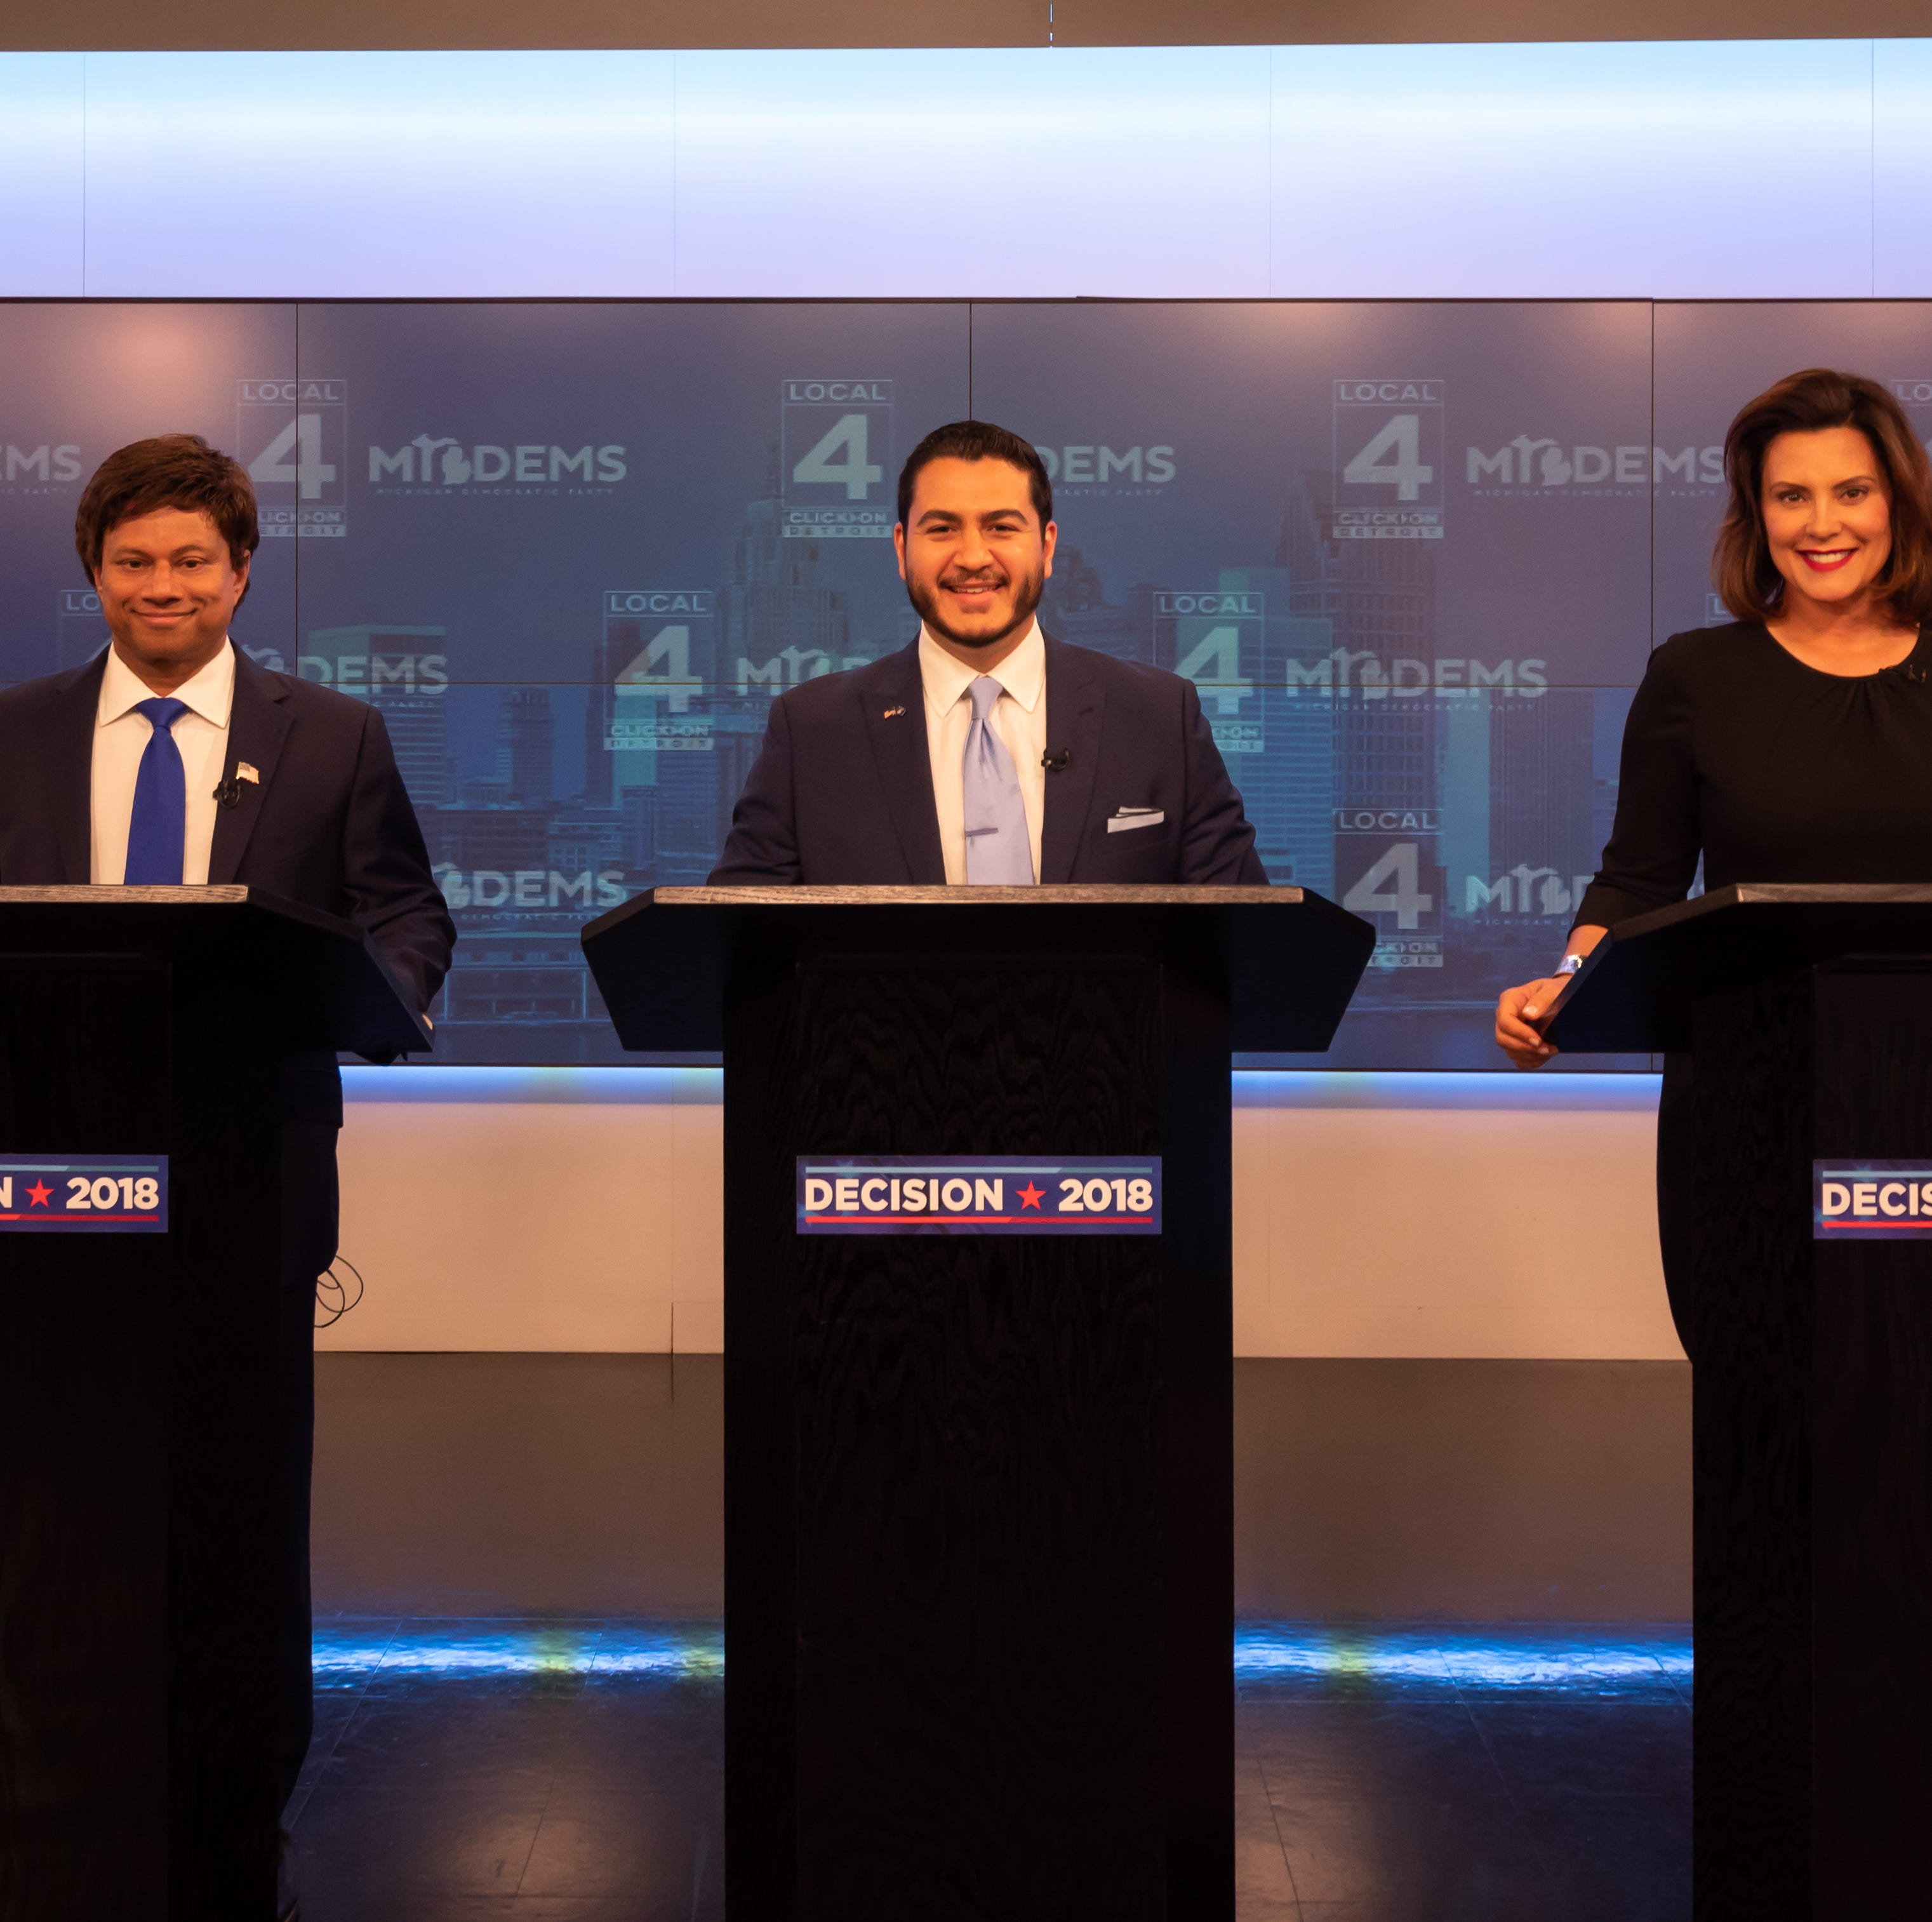 Democratic candidates trade jabs in final debate before Aug. 7 election